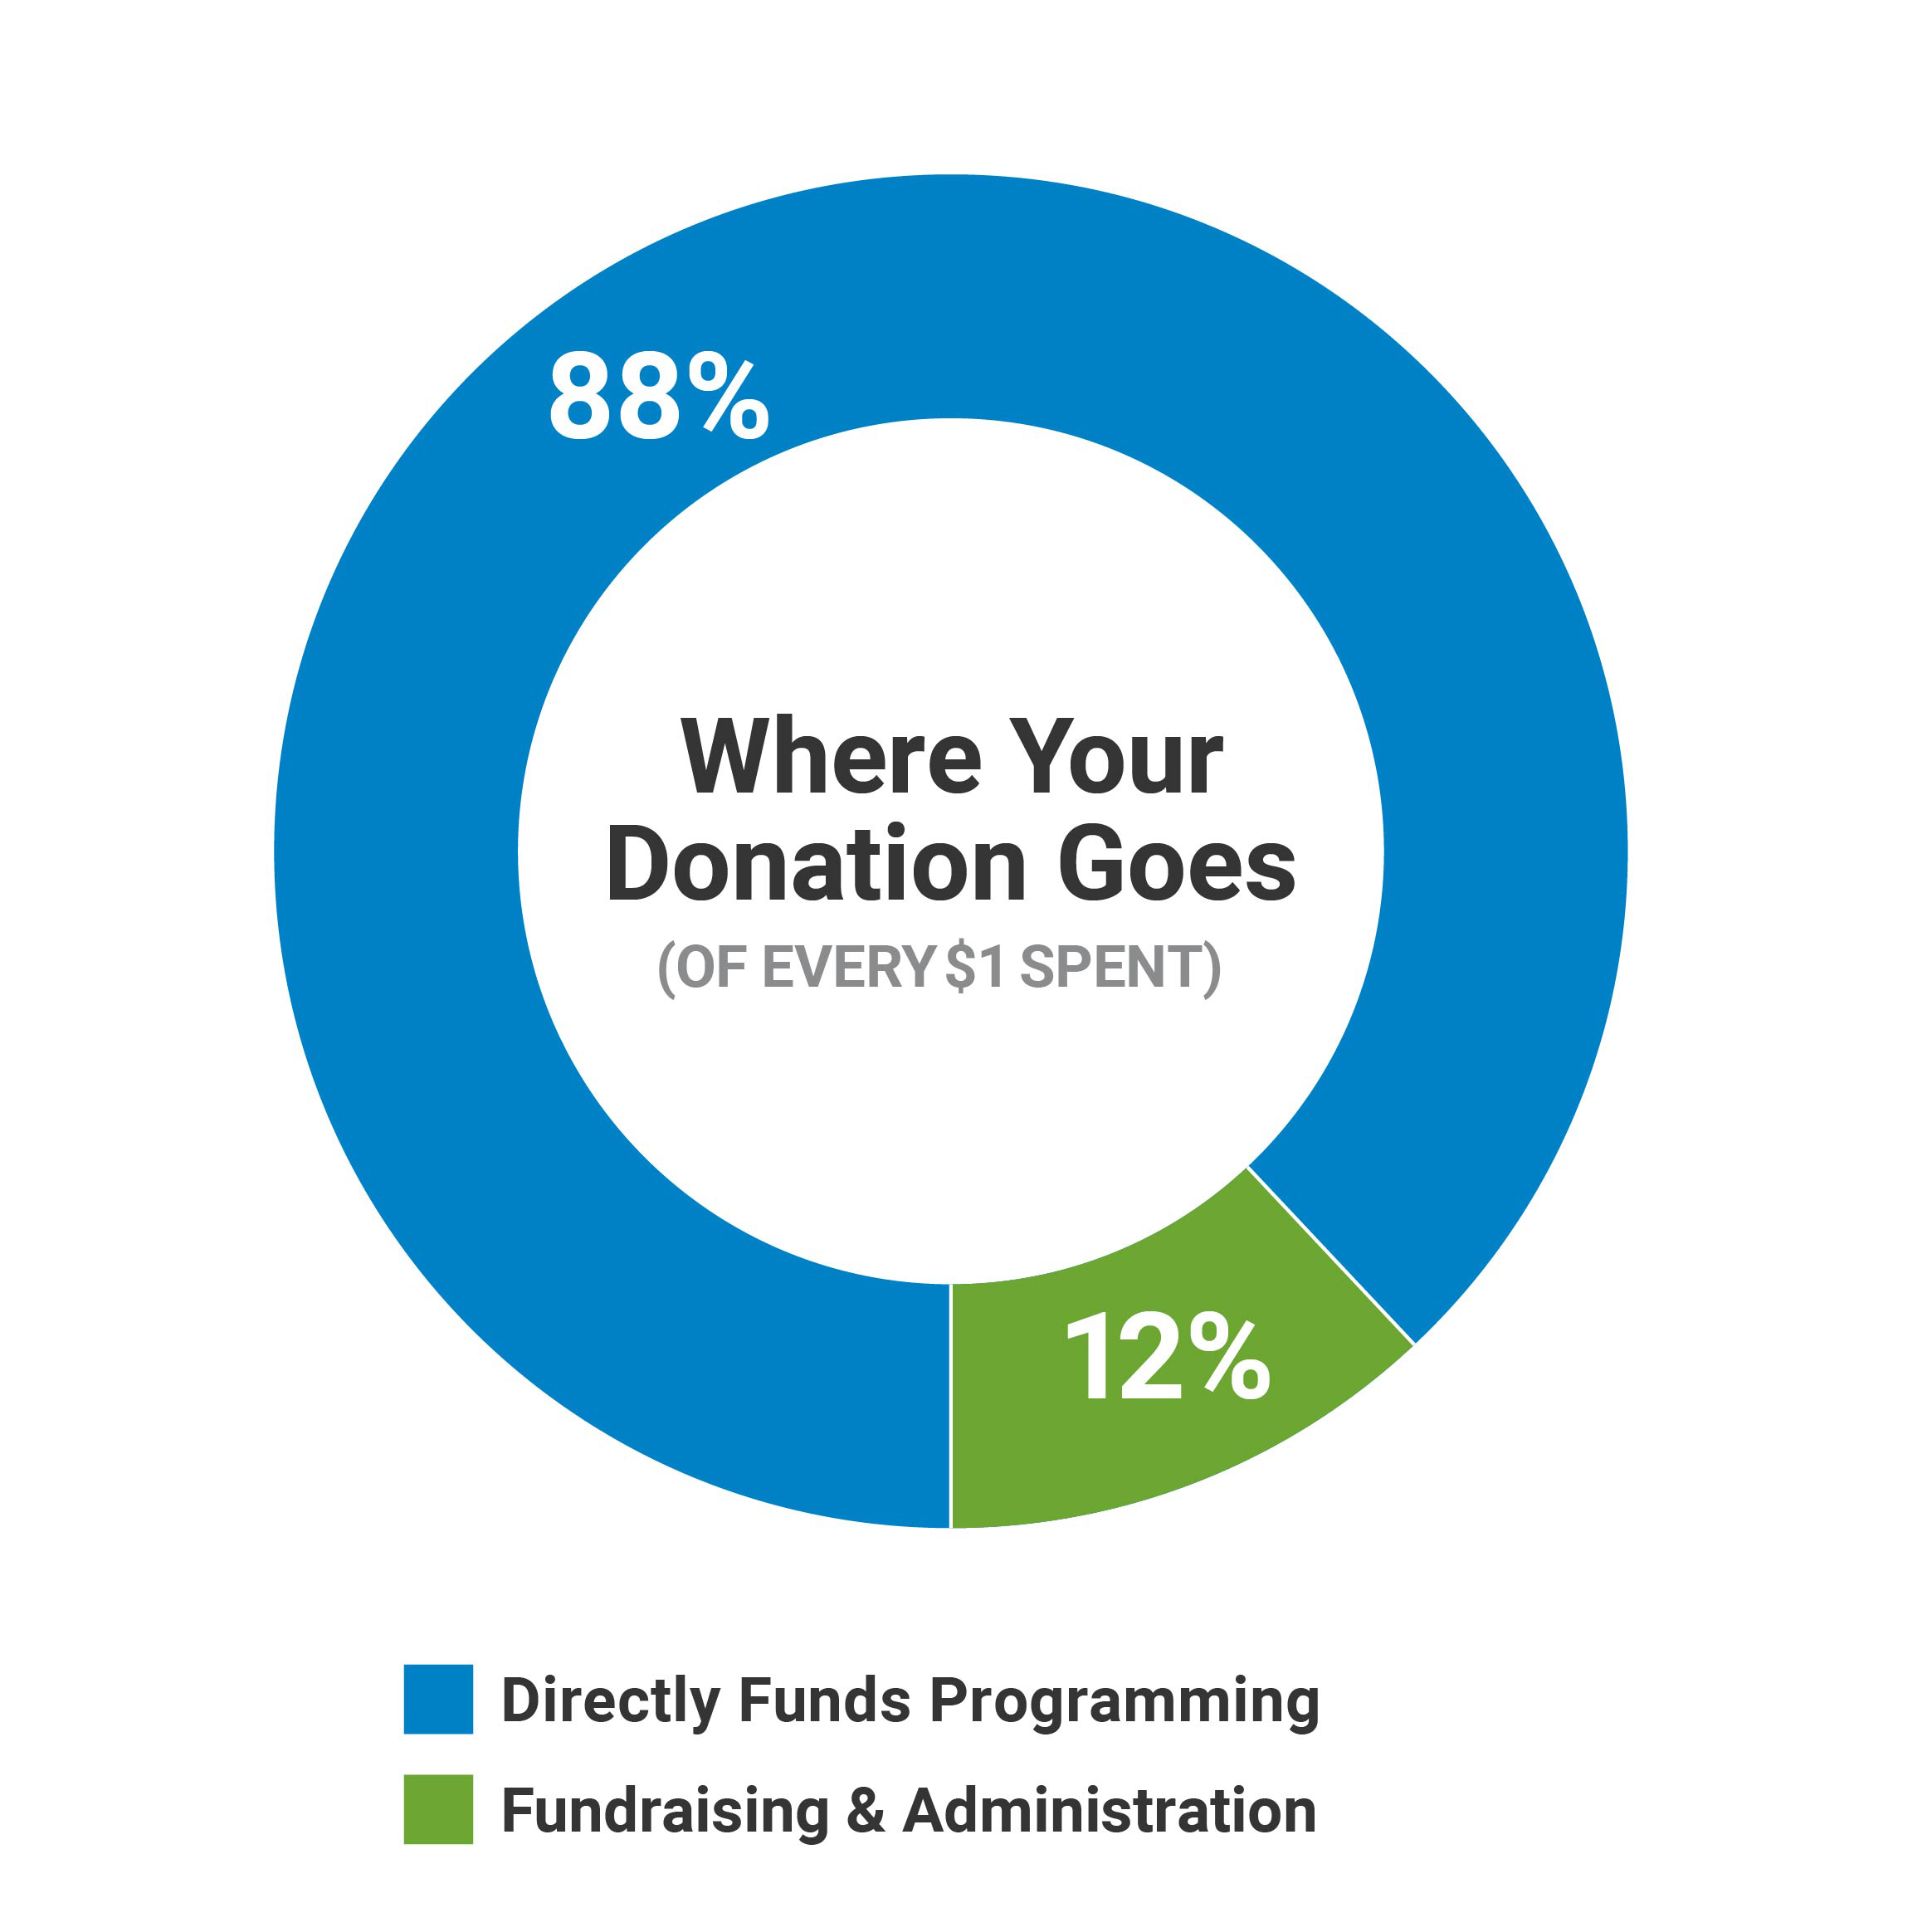 Where Your Donation Goes